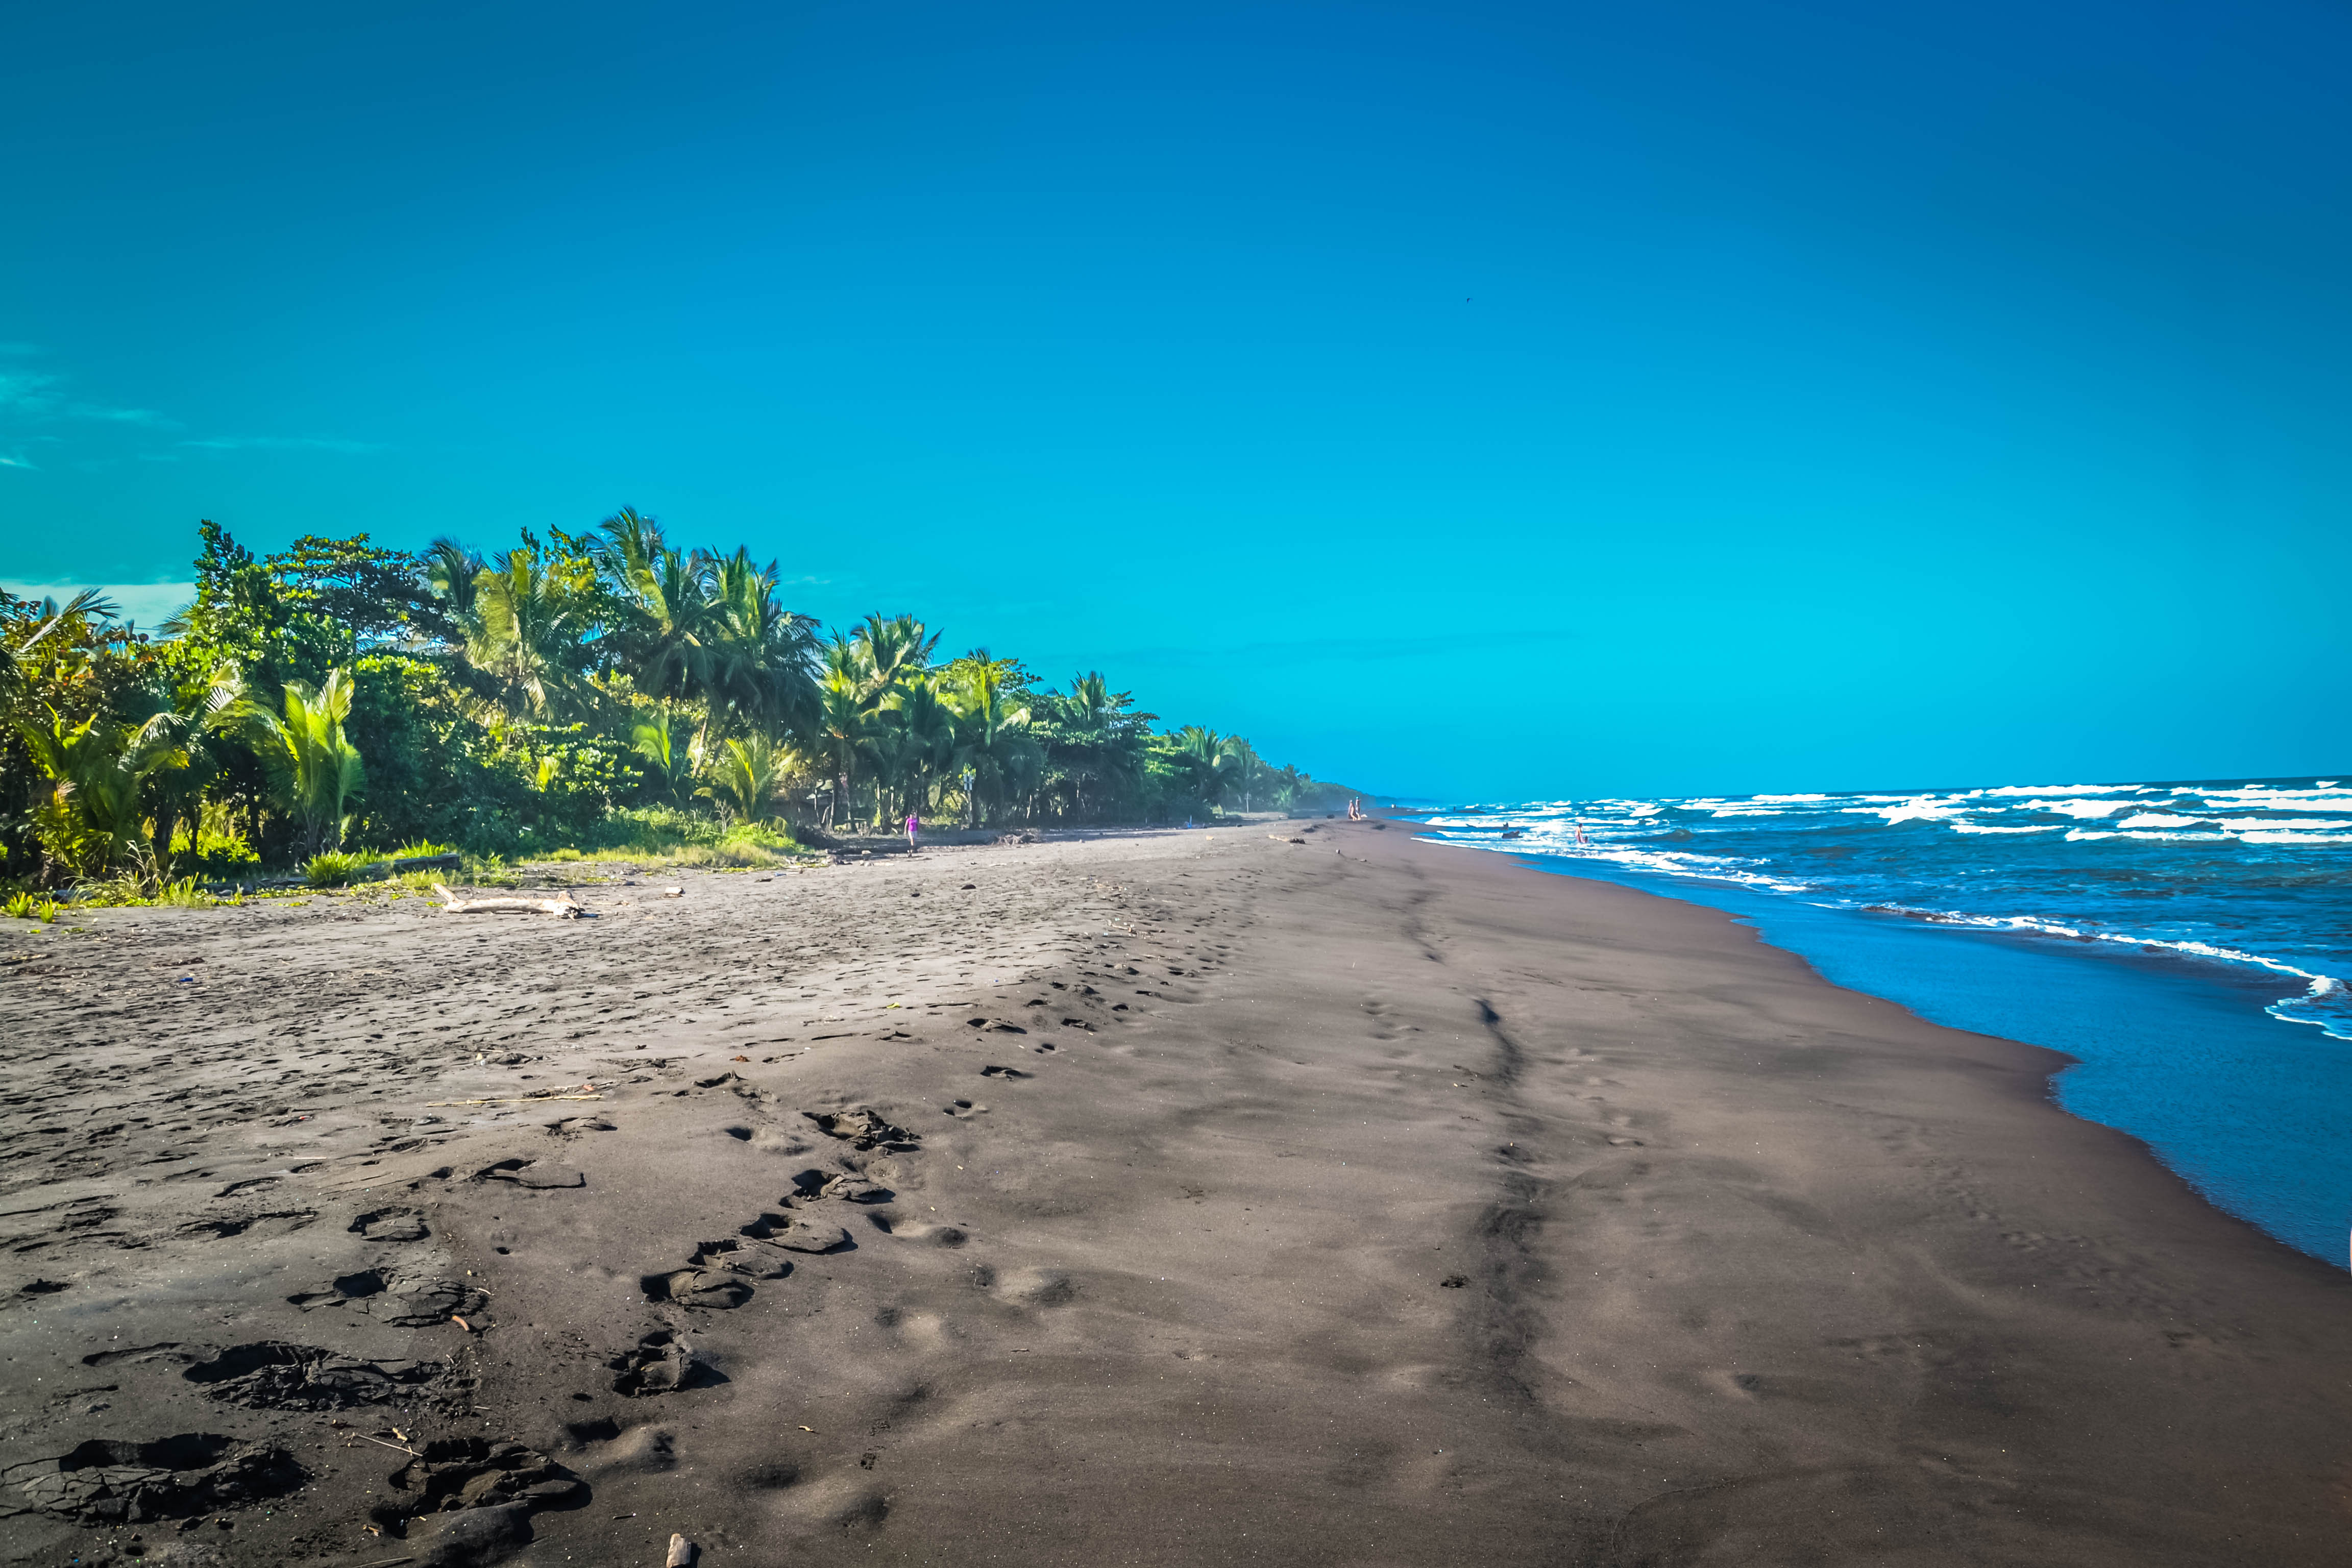 Black sand on the beach in Playa Negra in Costa Rica